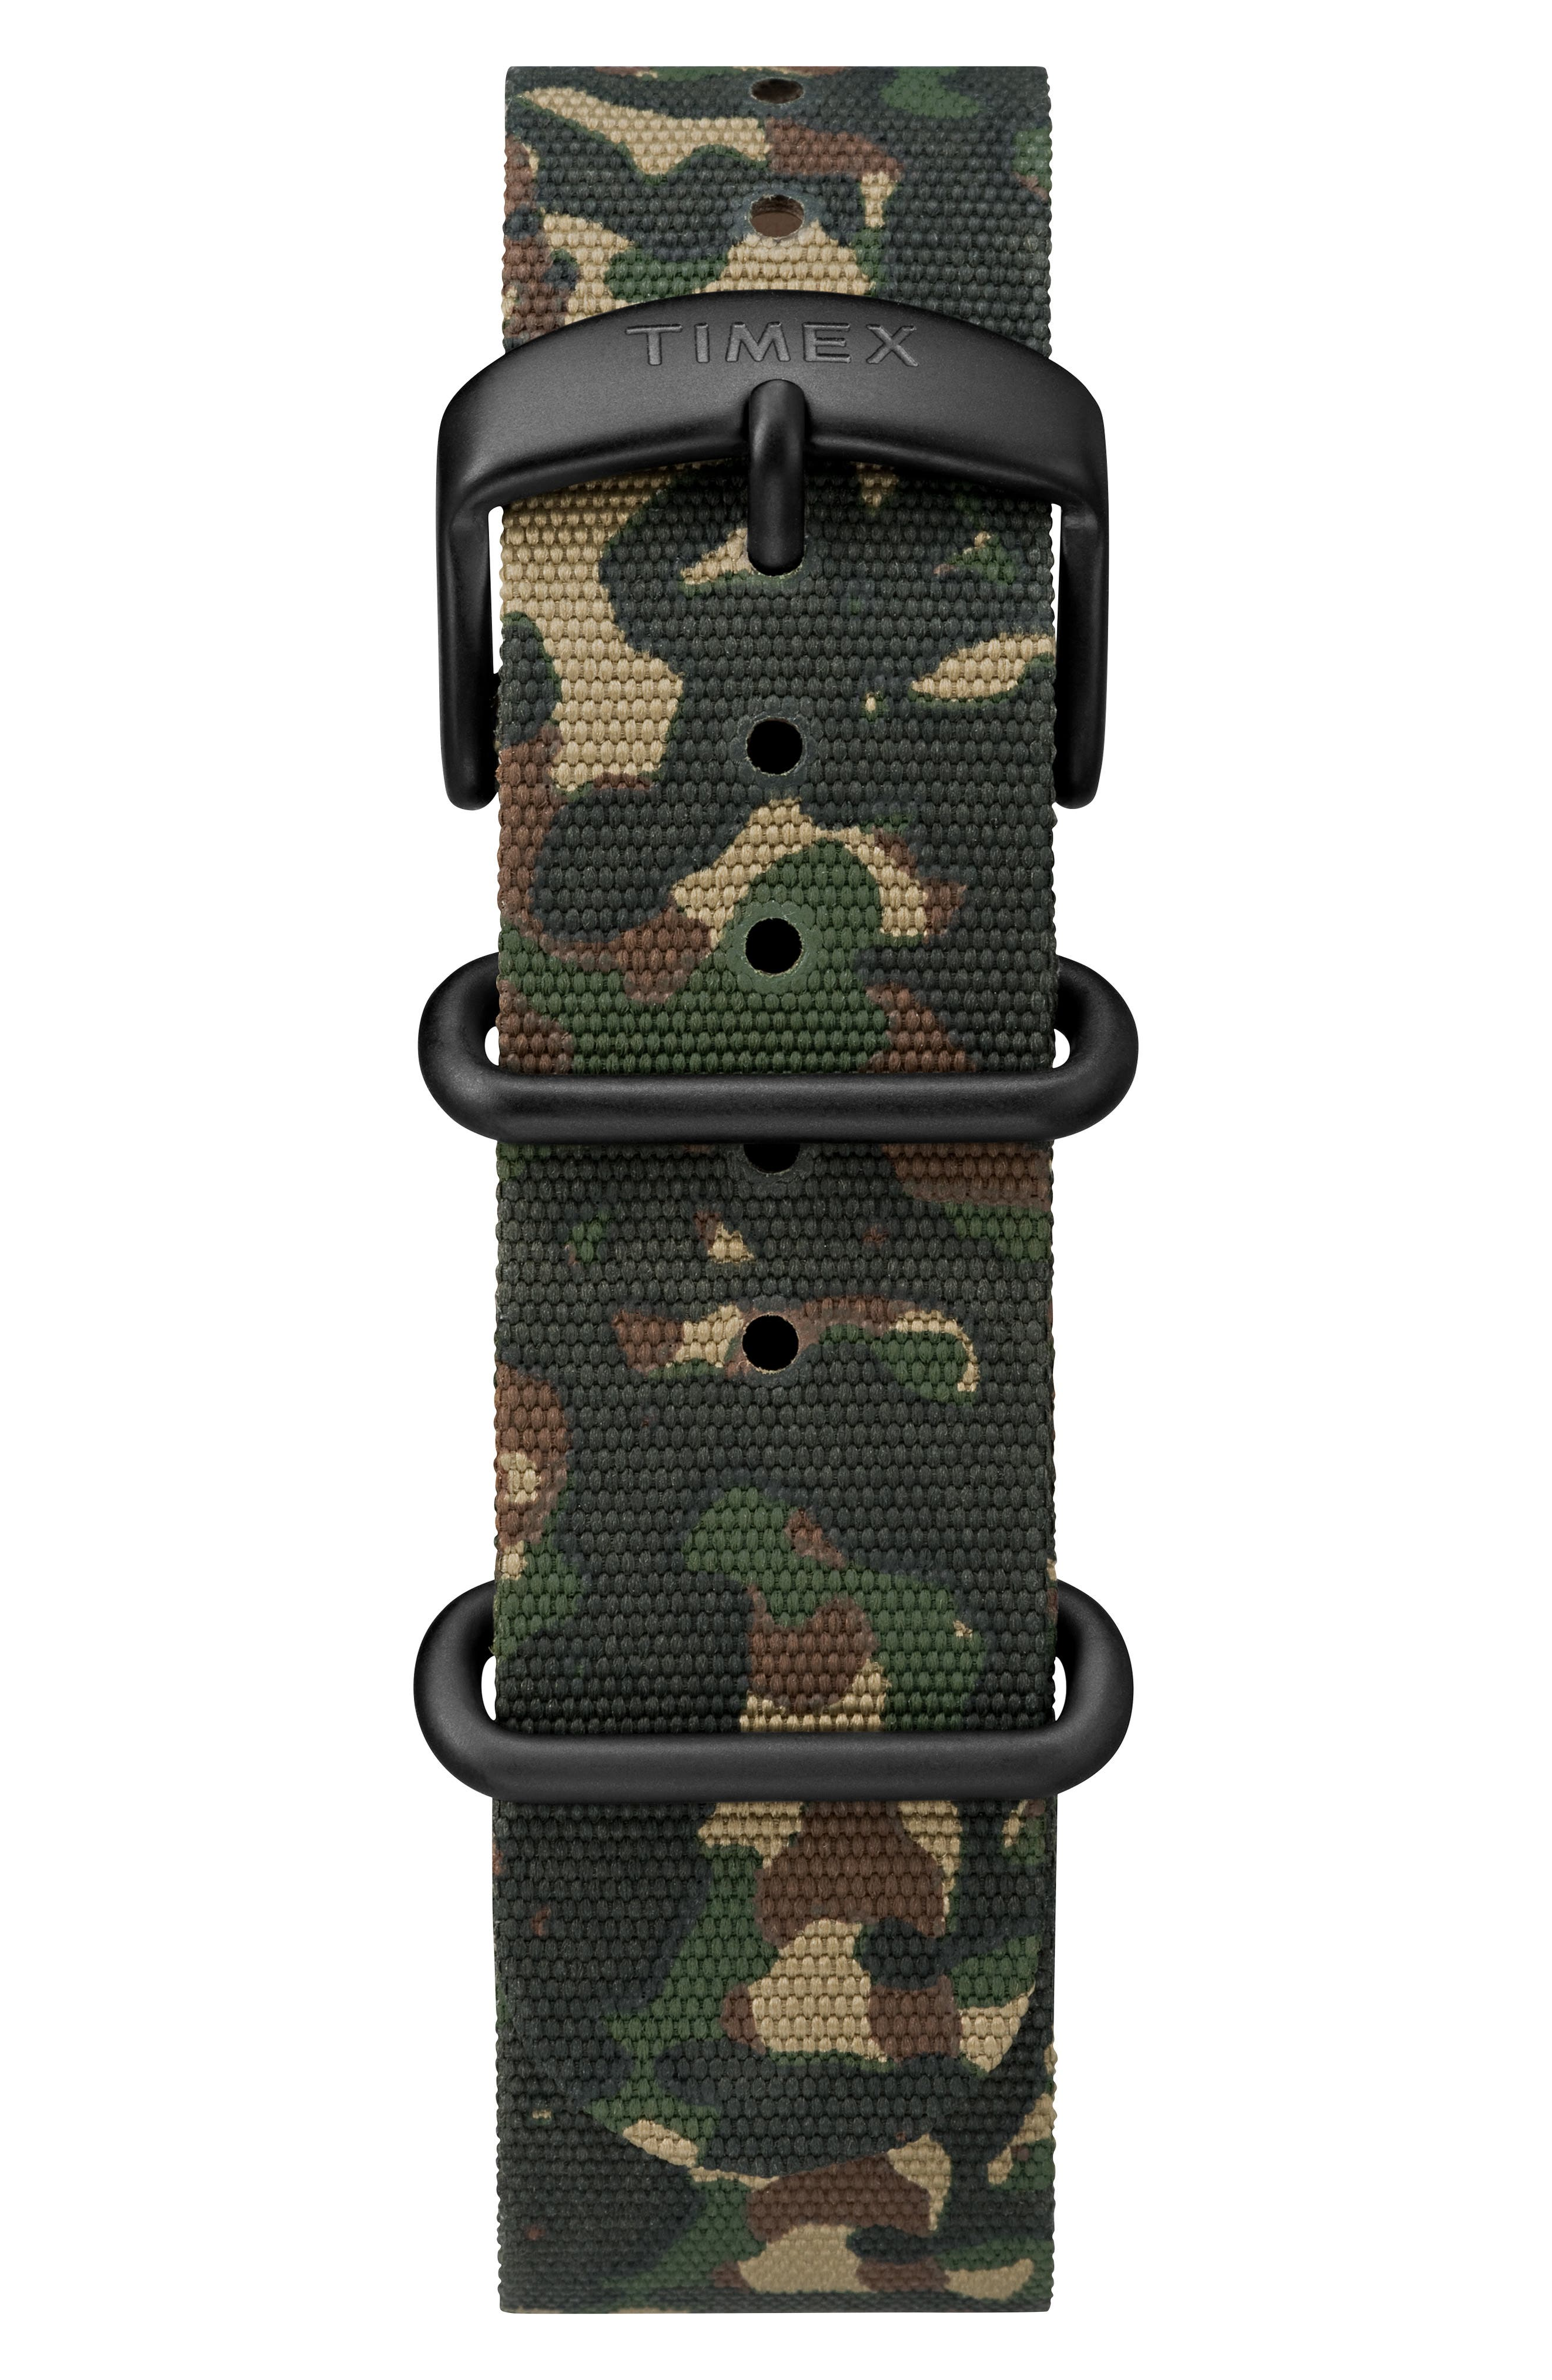 Timex<sup>®</sup> x Todd Snyder The Military NATO Strap Watch Set, 40mm,                             Alternate thumbnail 2, color,                             GREY/ CAMO